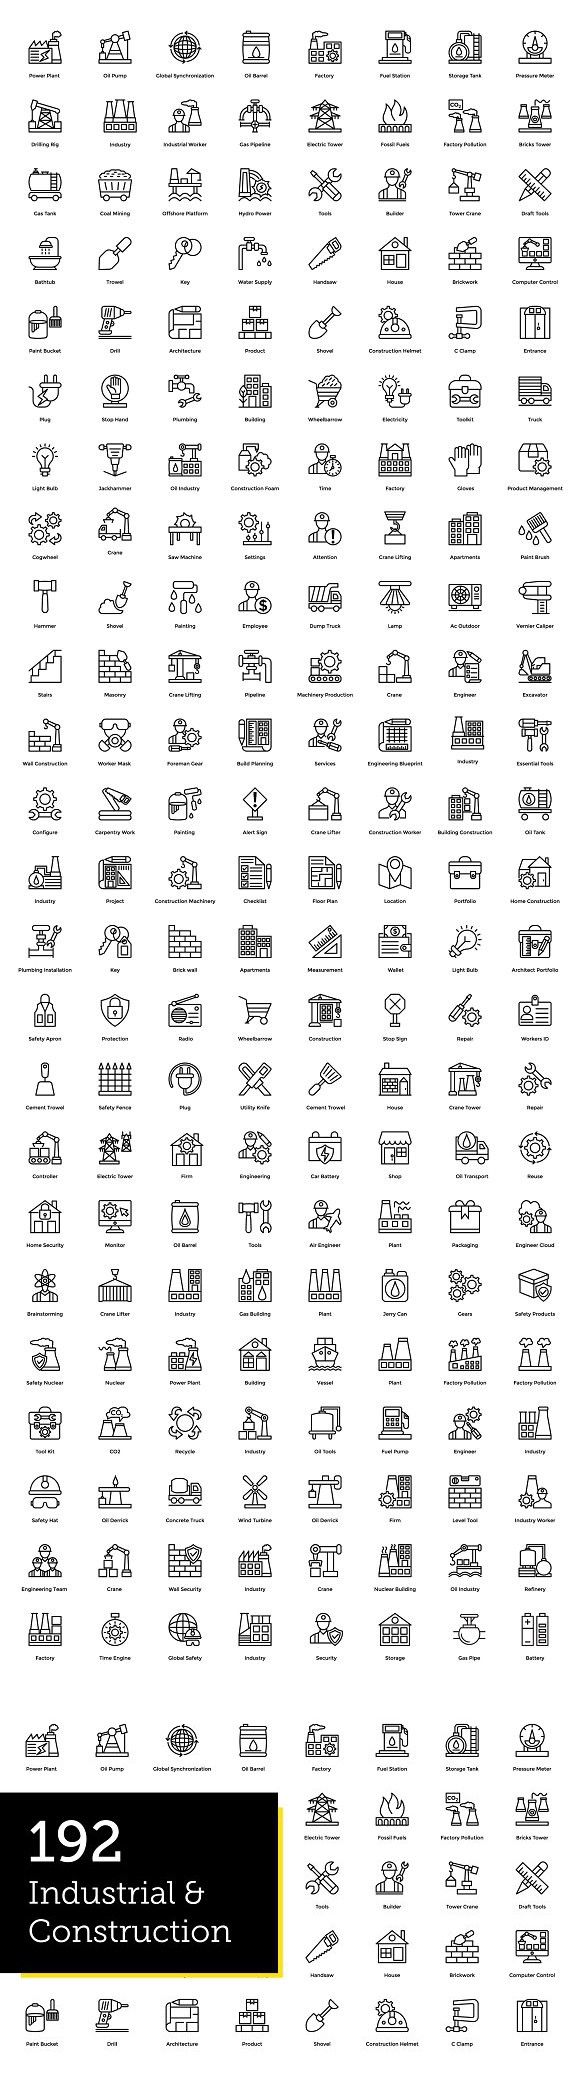 192 Industrial And Construction Icon Icon Png Icons Industrial